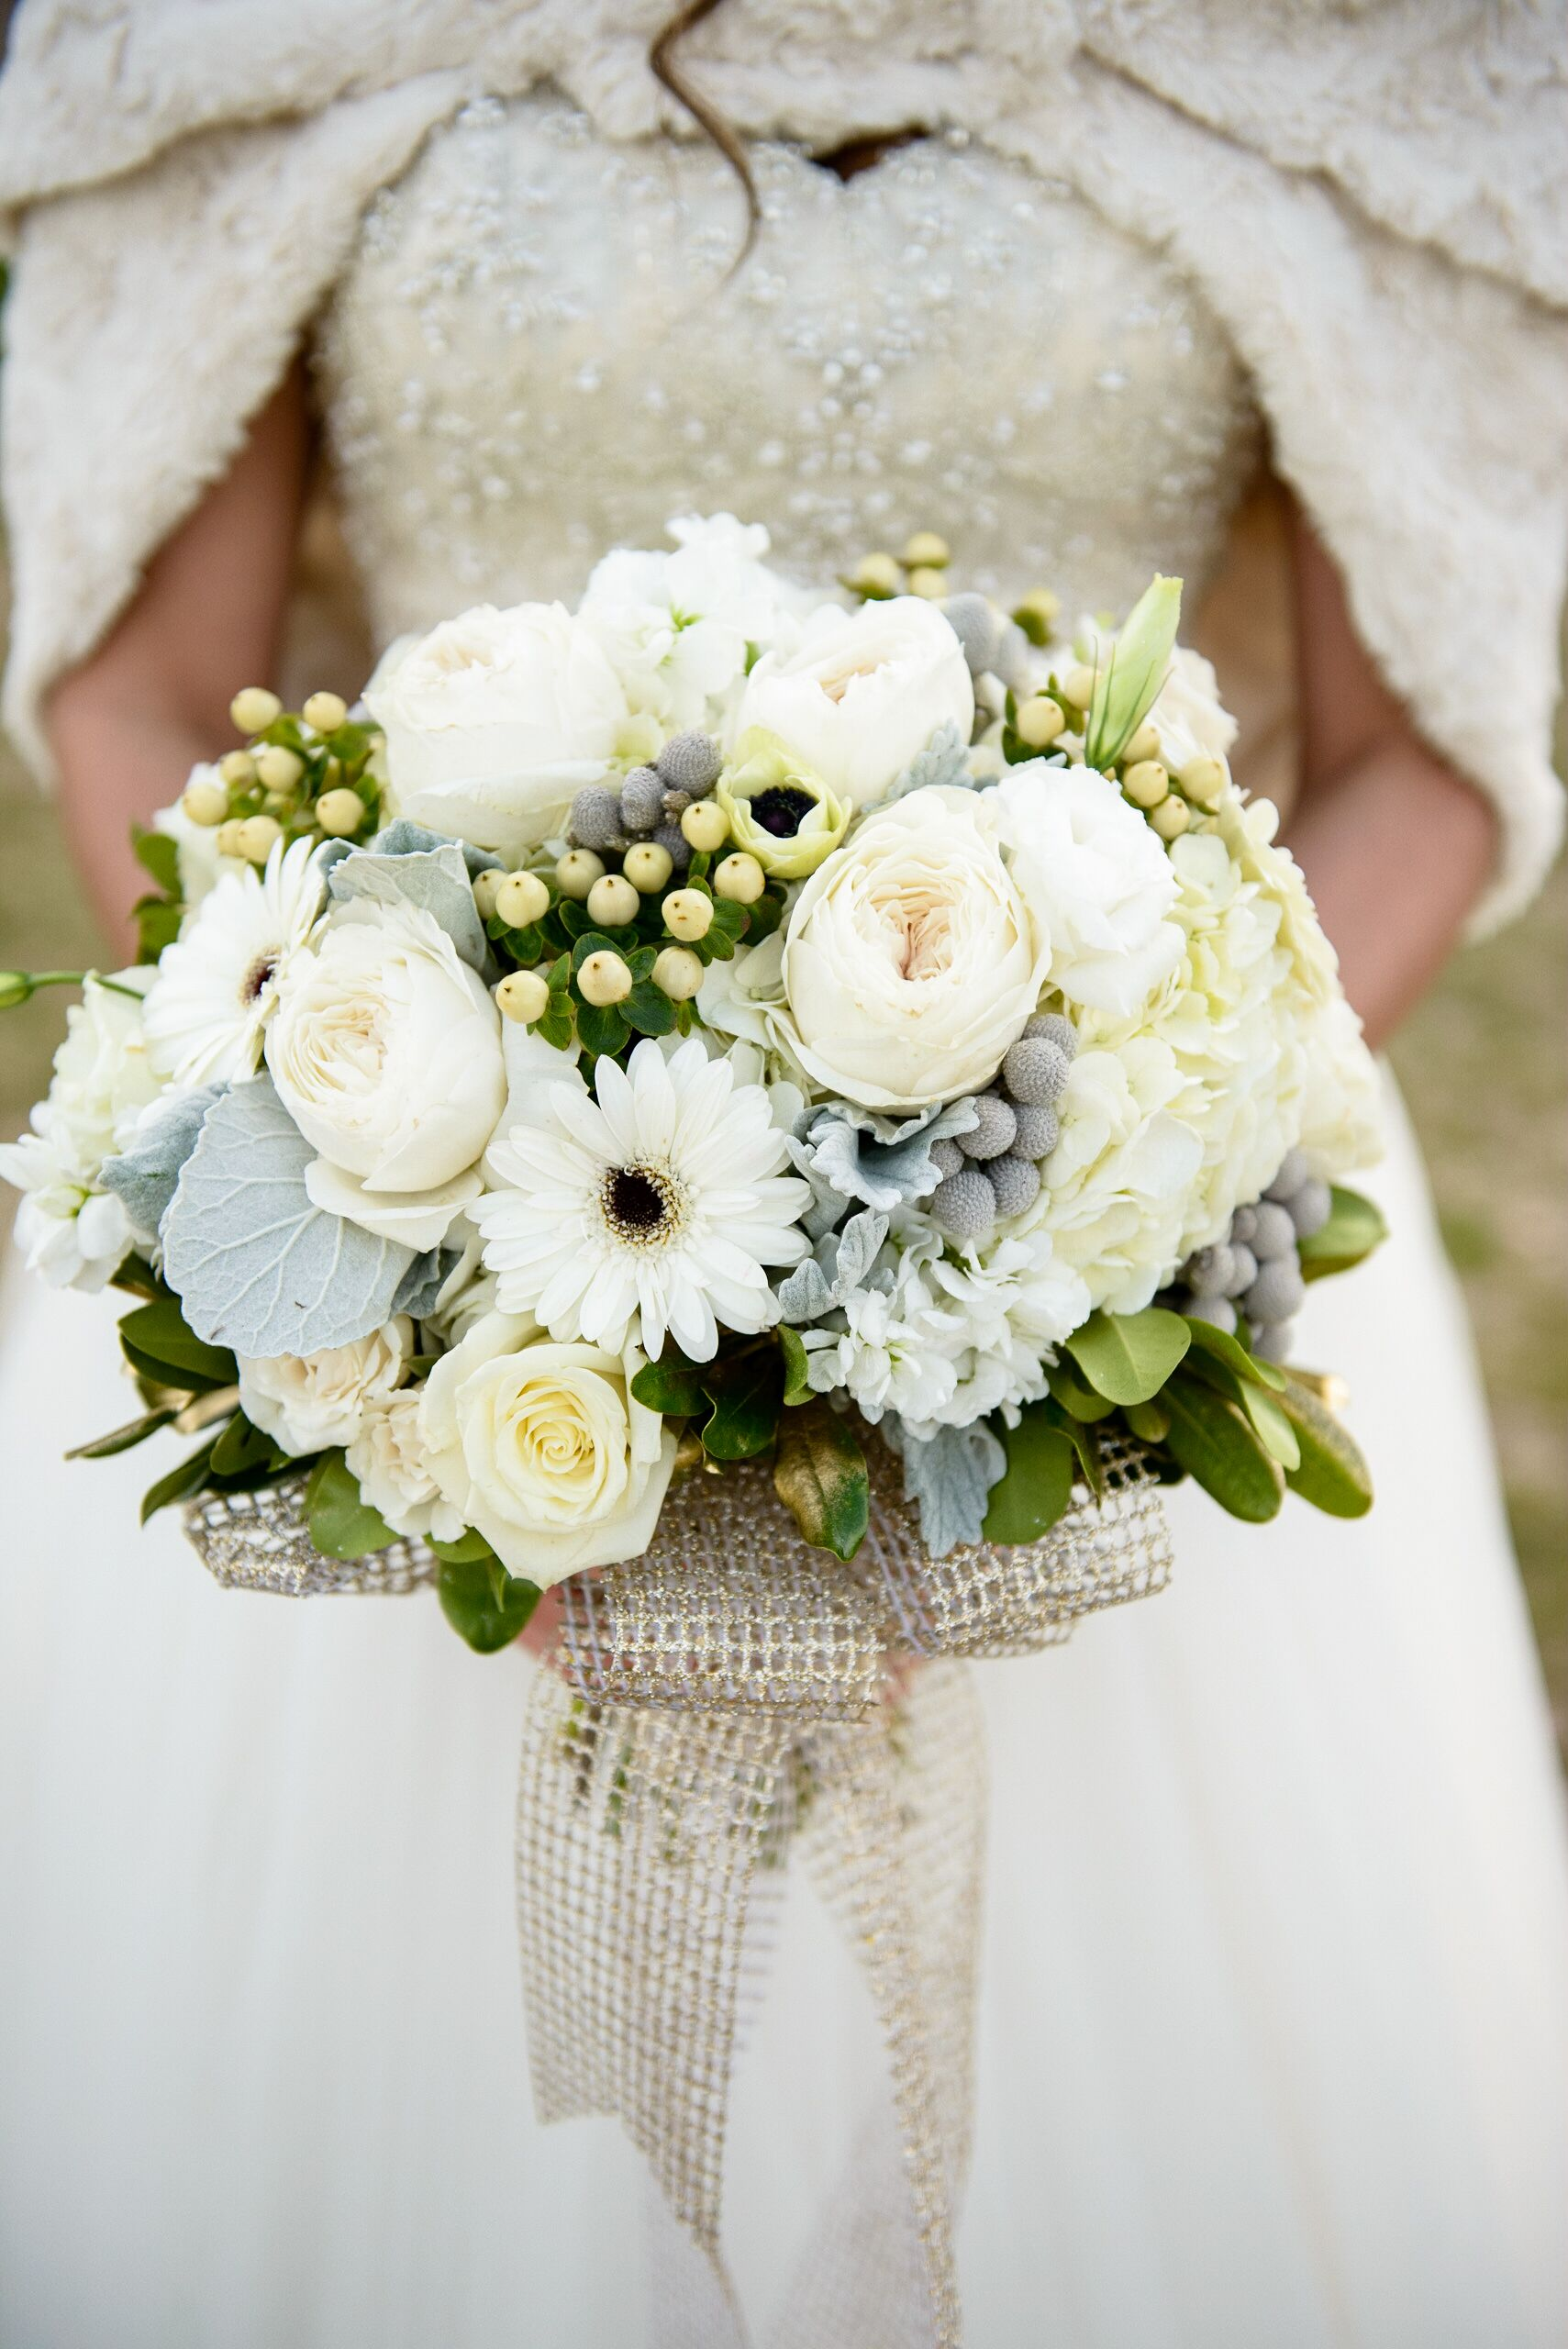 Winter White Rose And Daisy Bouquet